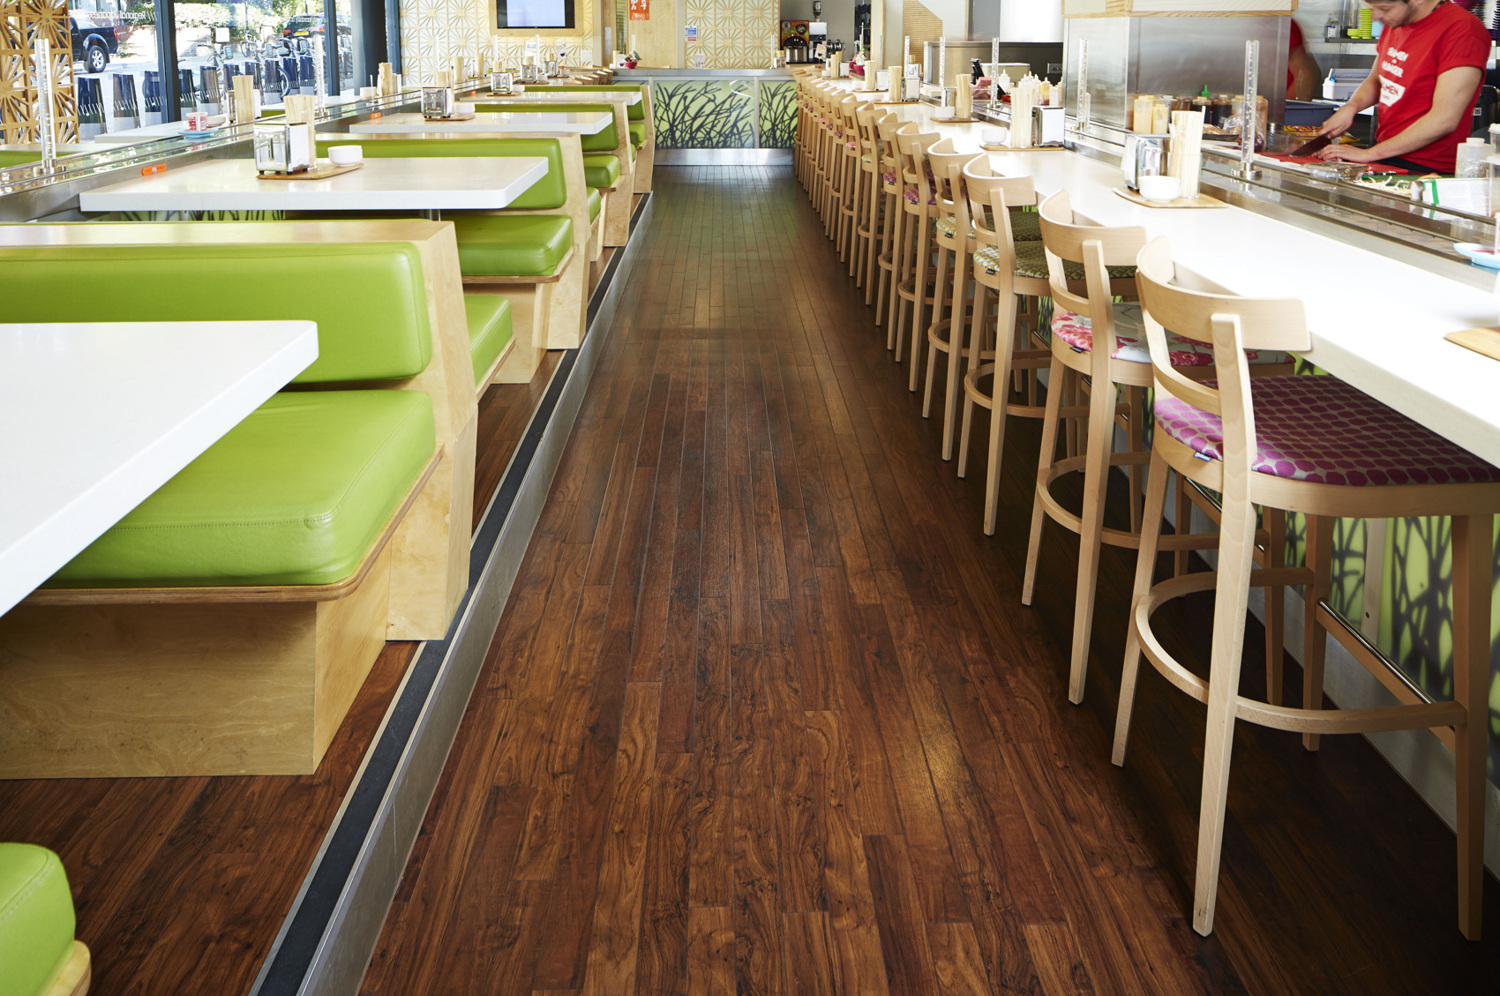 Why choose karndean over other flooring types ross on wye flooring why choose karndean over other flooring types dailygadgetfo Images